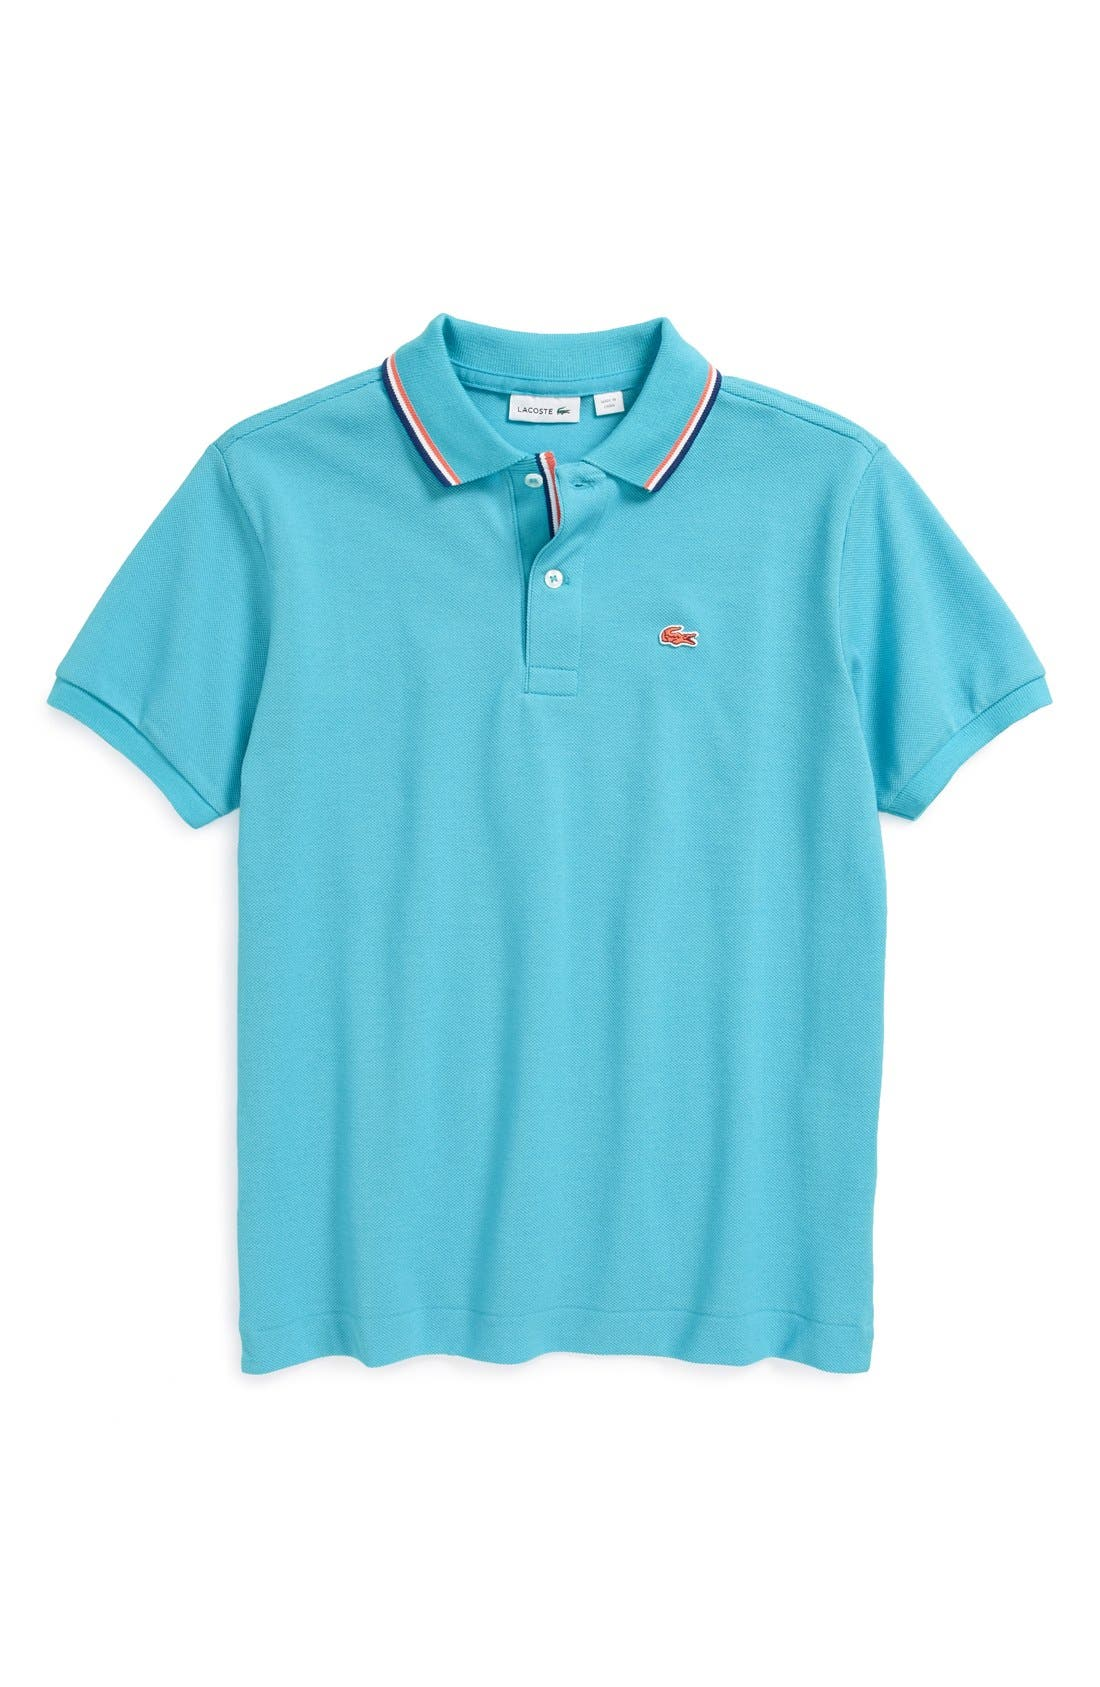 Alternate Image 1 Selected - Lacoste Tricolor Collar Piqué Polo (Little Boys & Big Boys)